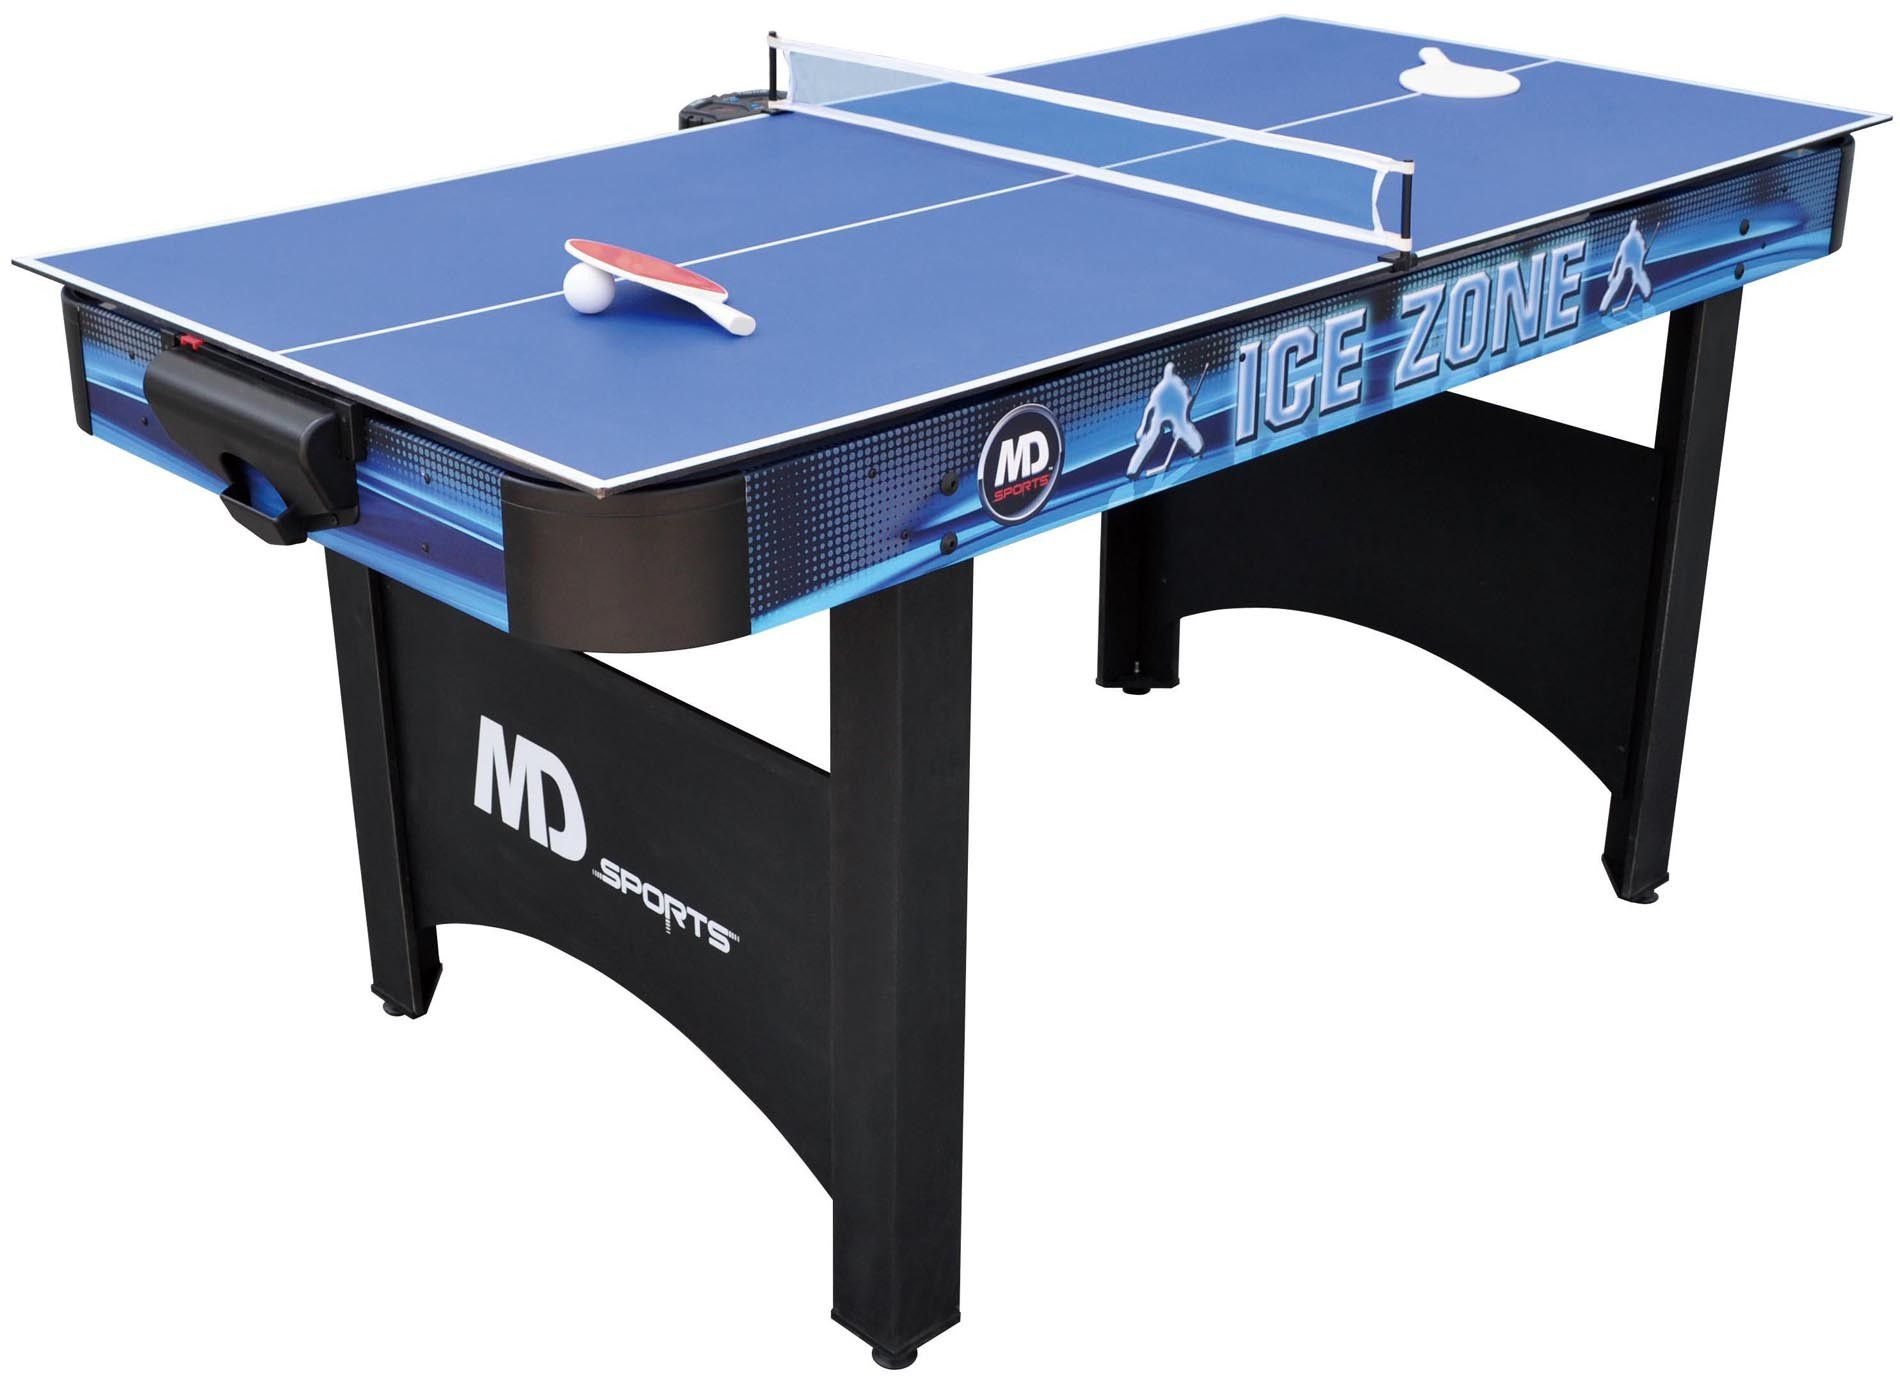 MD Sports 66in Air Powered Hockey Table with Bonus Table Tennis Top